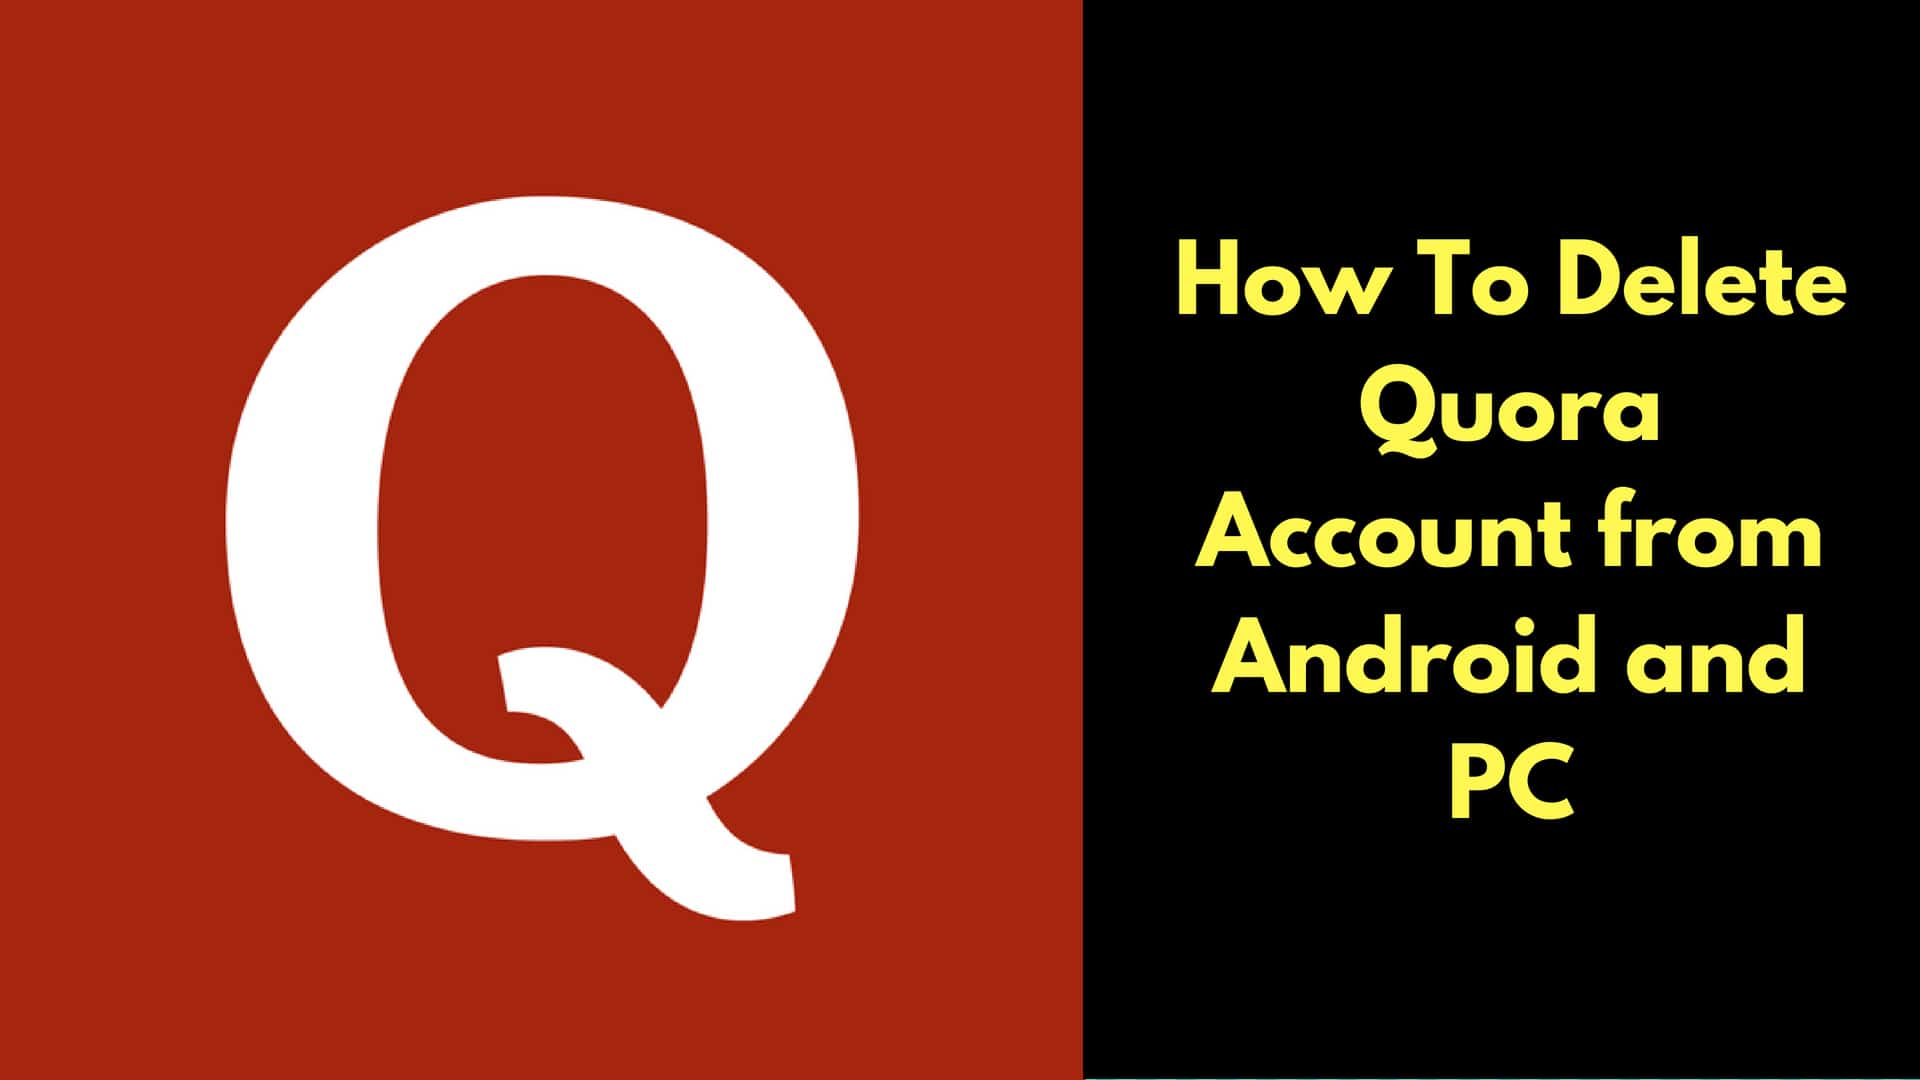 How To Delete Quora Account from Android and PC